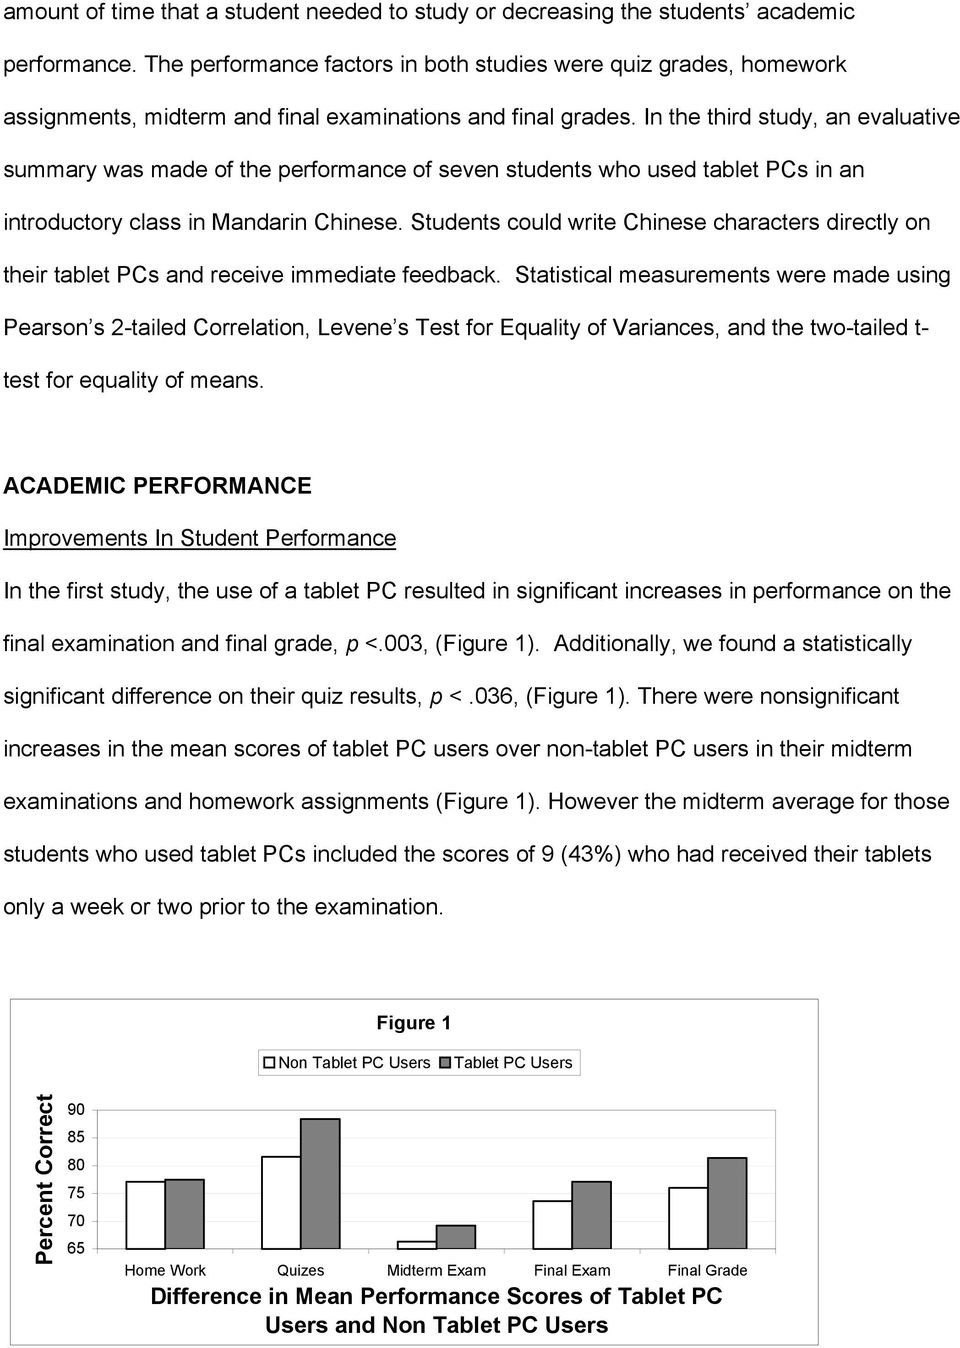 In the third study, an evaluative summary was made of the performance of seven students who used tablet PCs in an introductory class in Mandarin Chinese.